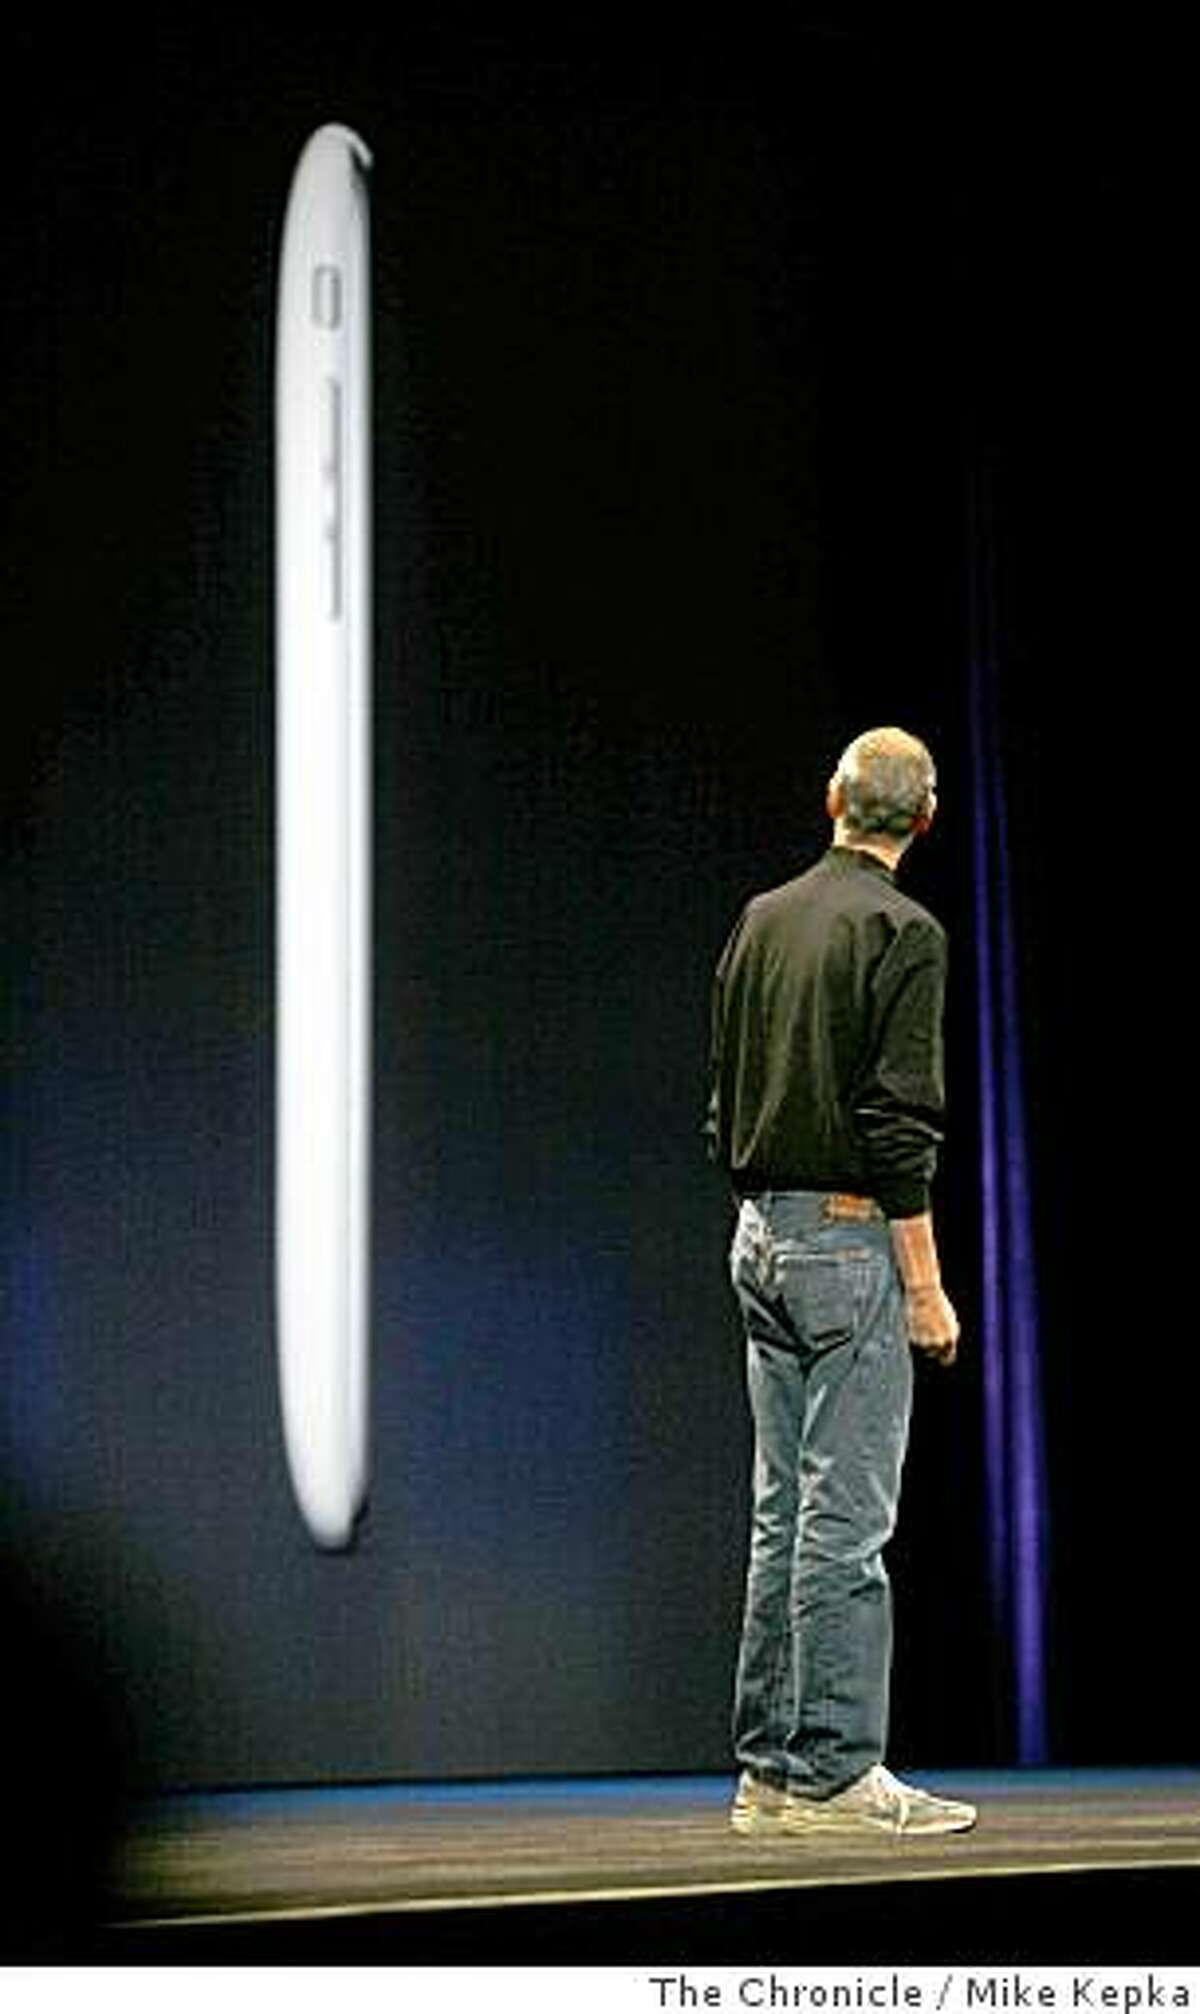 During the keynote address at this World Wide Developers Conference, Apple CEO Steve Jobs announces a new slimmer iPhone 3G on Monday, June, 9, 2008 in San Francisco, Calif. The new iPhone promises to be faster and cheaper then ever before with prices starting as low as $199. Photo by Mike Kepka / The Chronicle